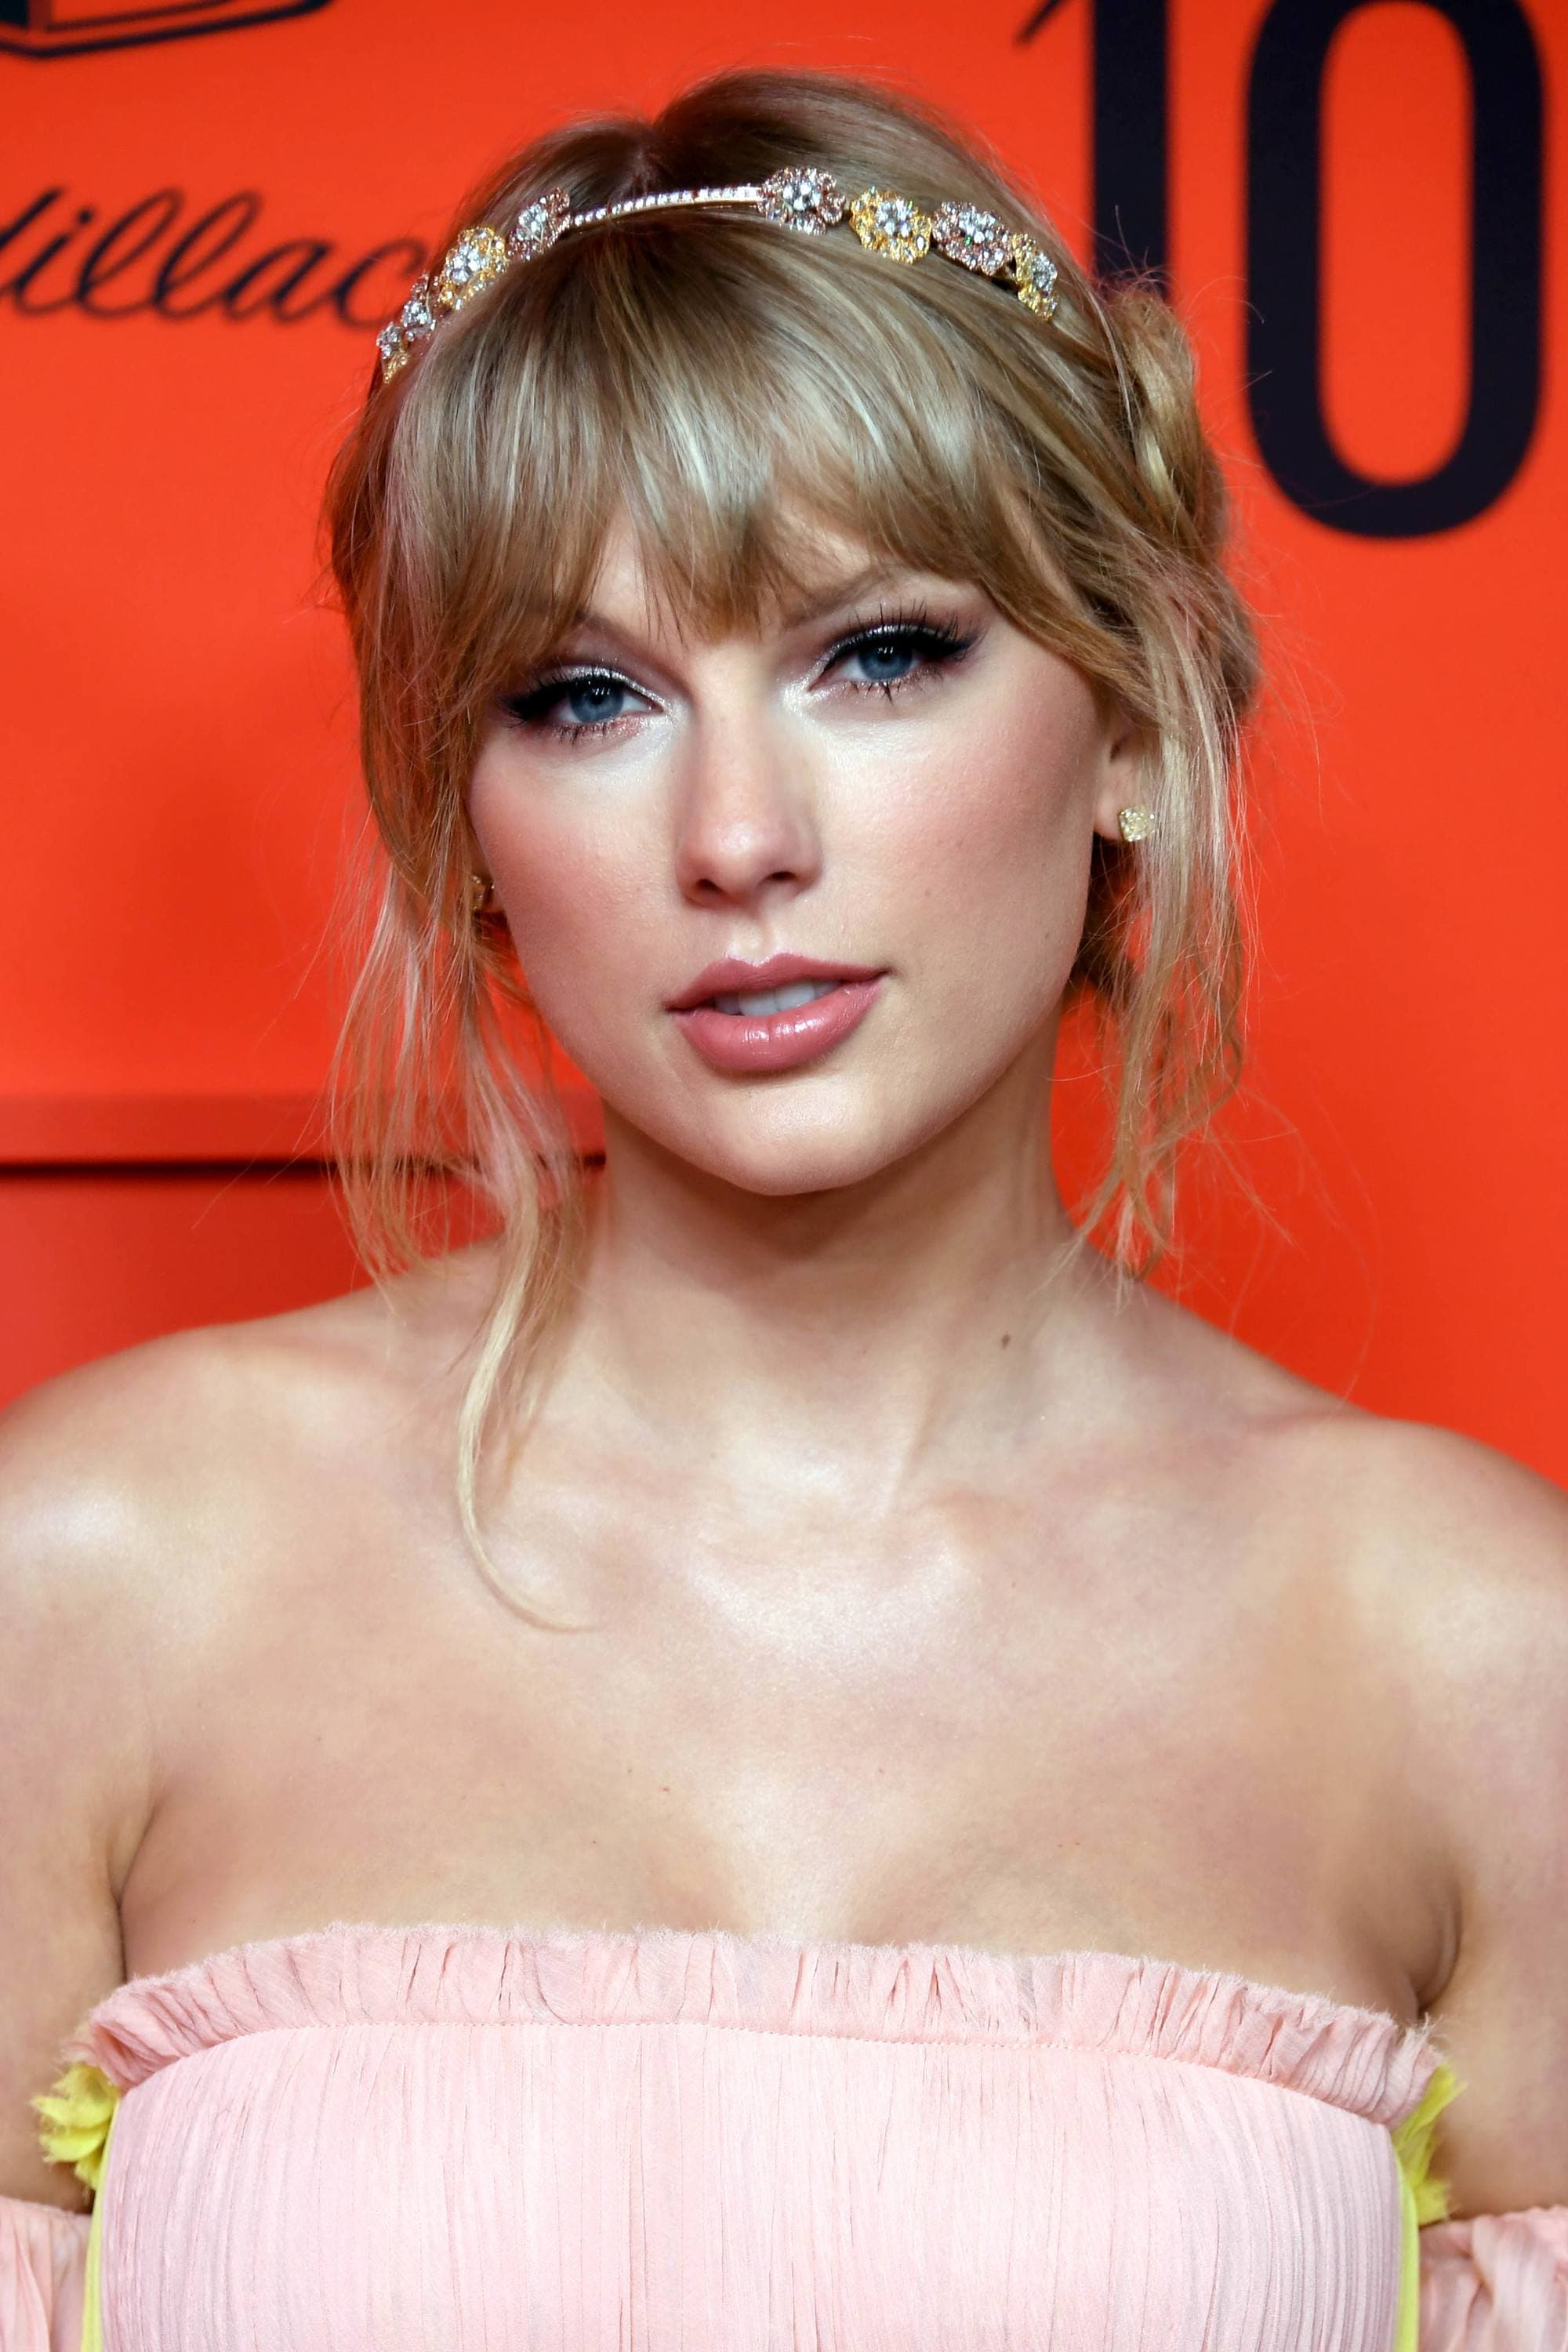 Headband hairstyles: Taylor Swift with halo braid with wispy bangs with a floral headband on, wearing pink dress at the Time 100 Gala event